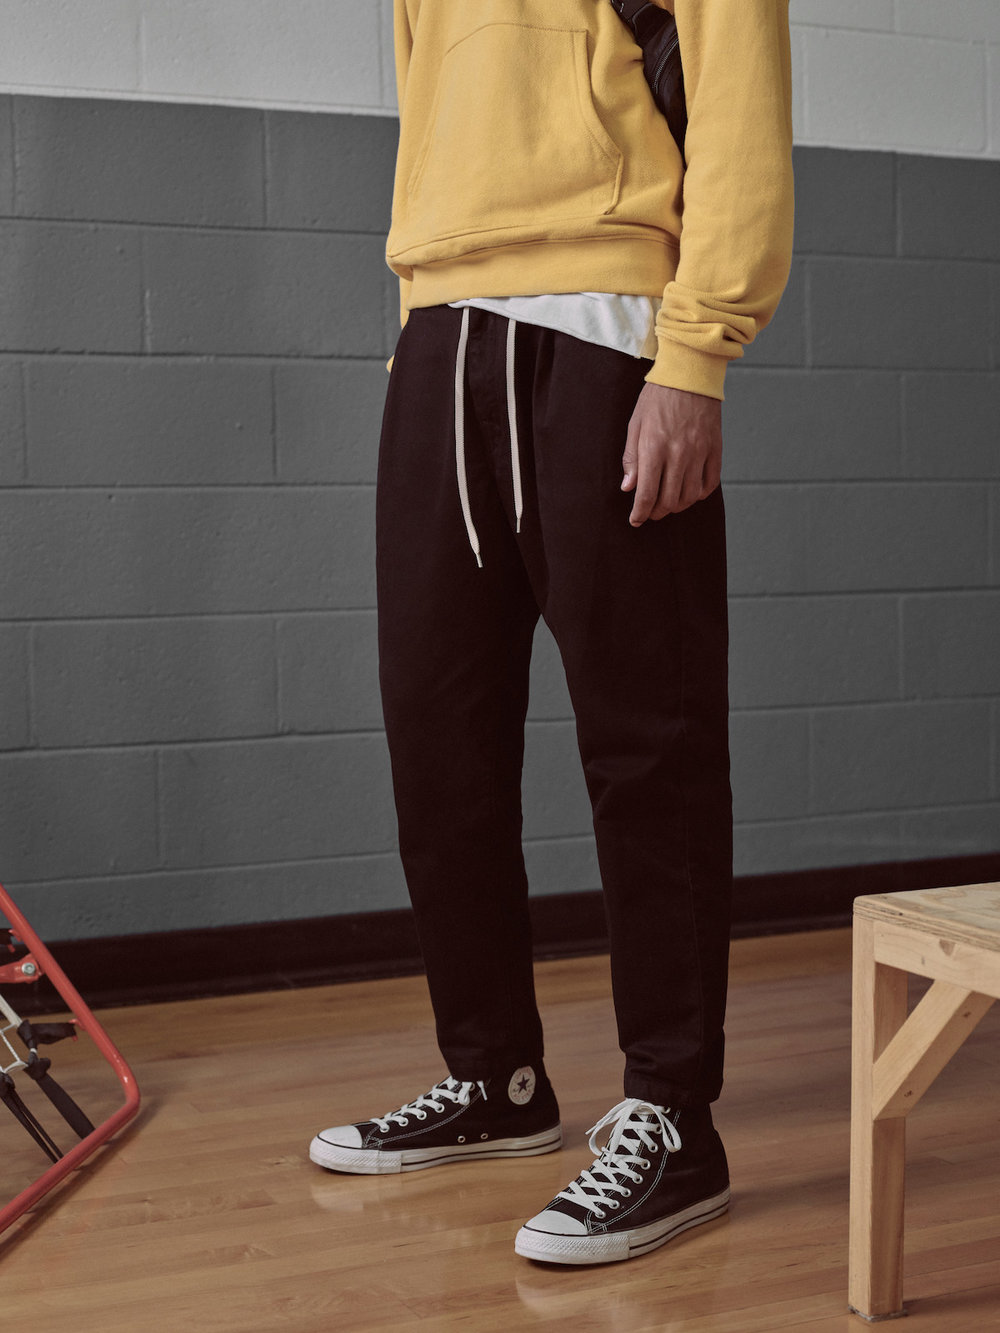 JECO_FW17_DELIVERY I_LOOK BOOK_MAUS1836.jpeg